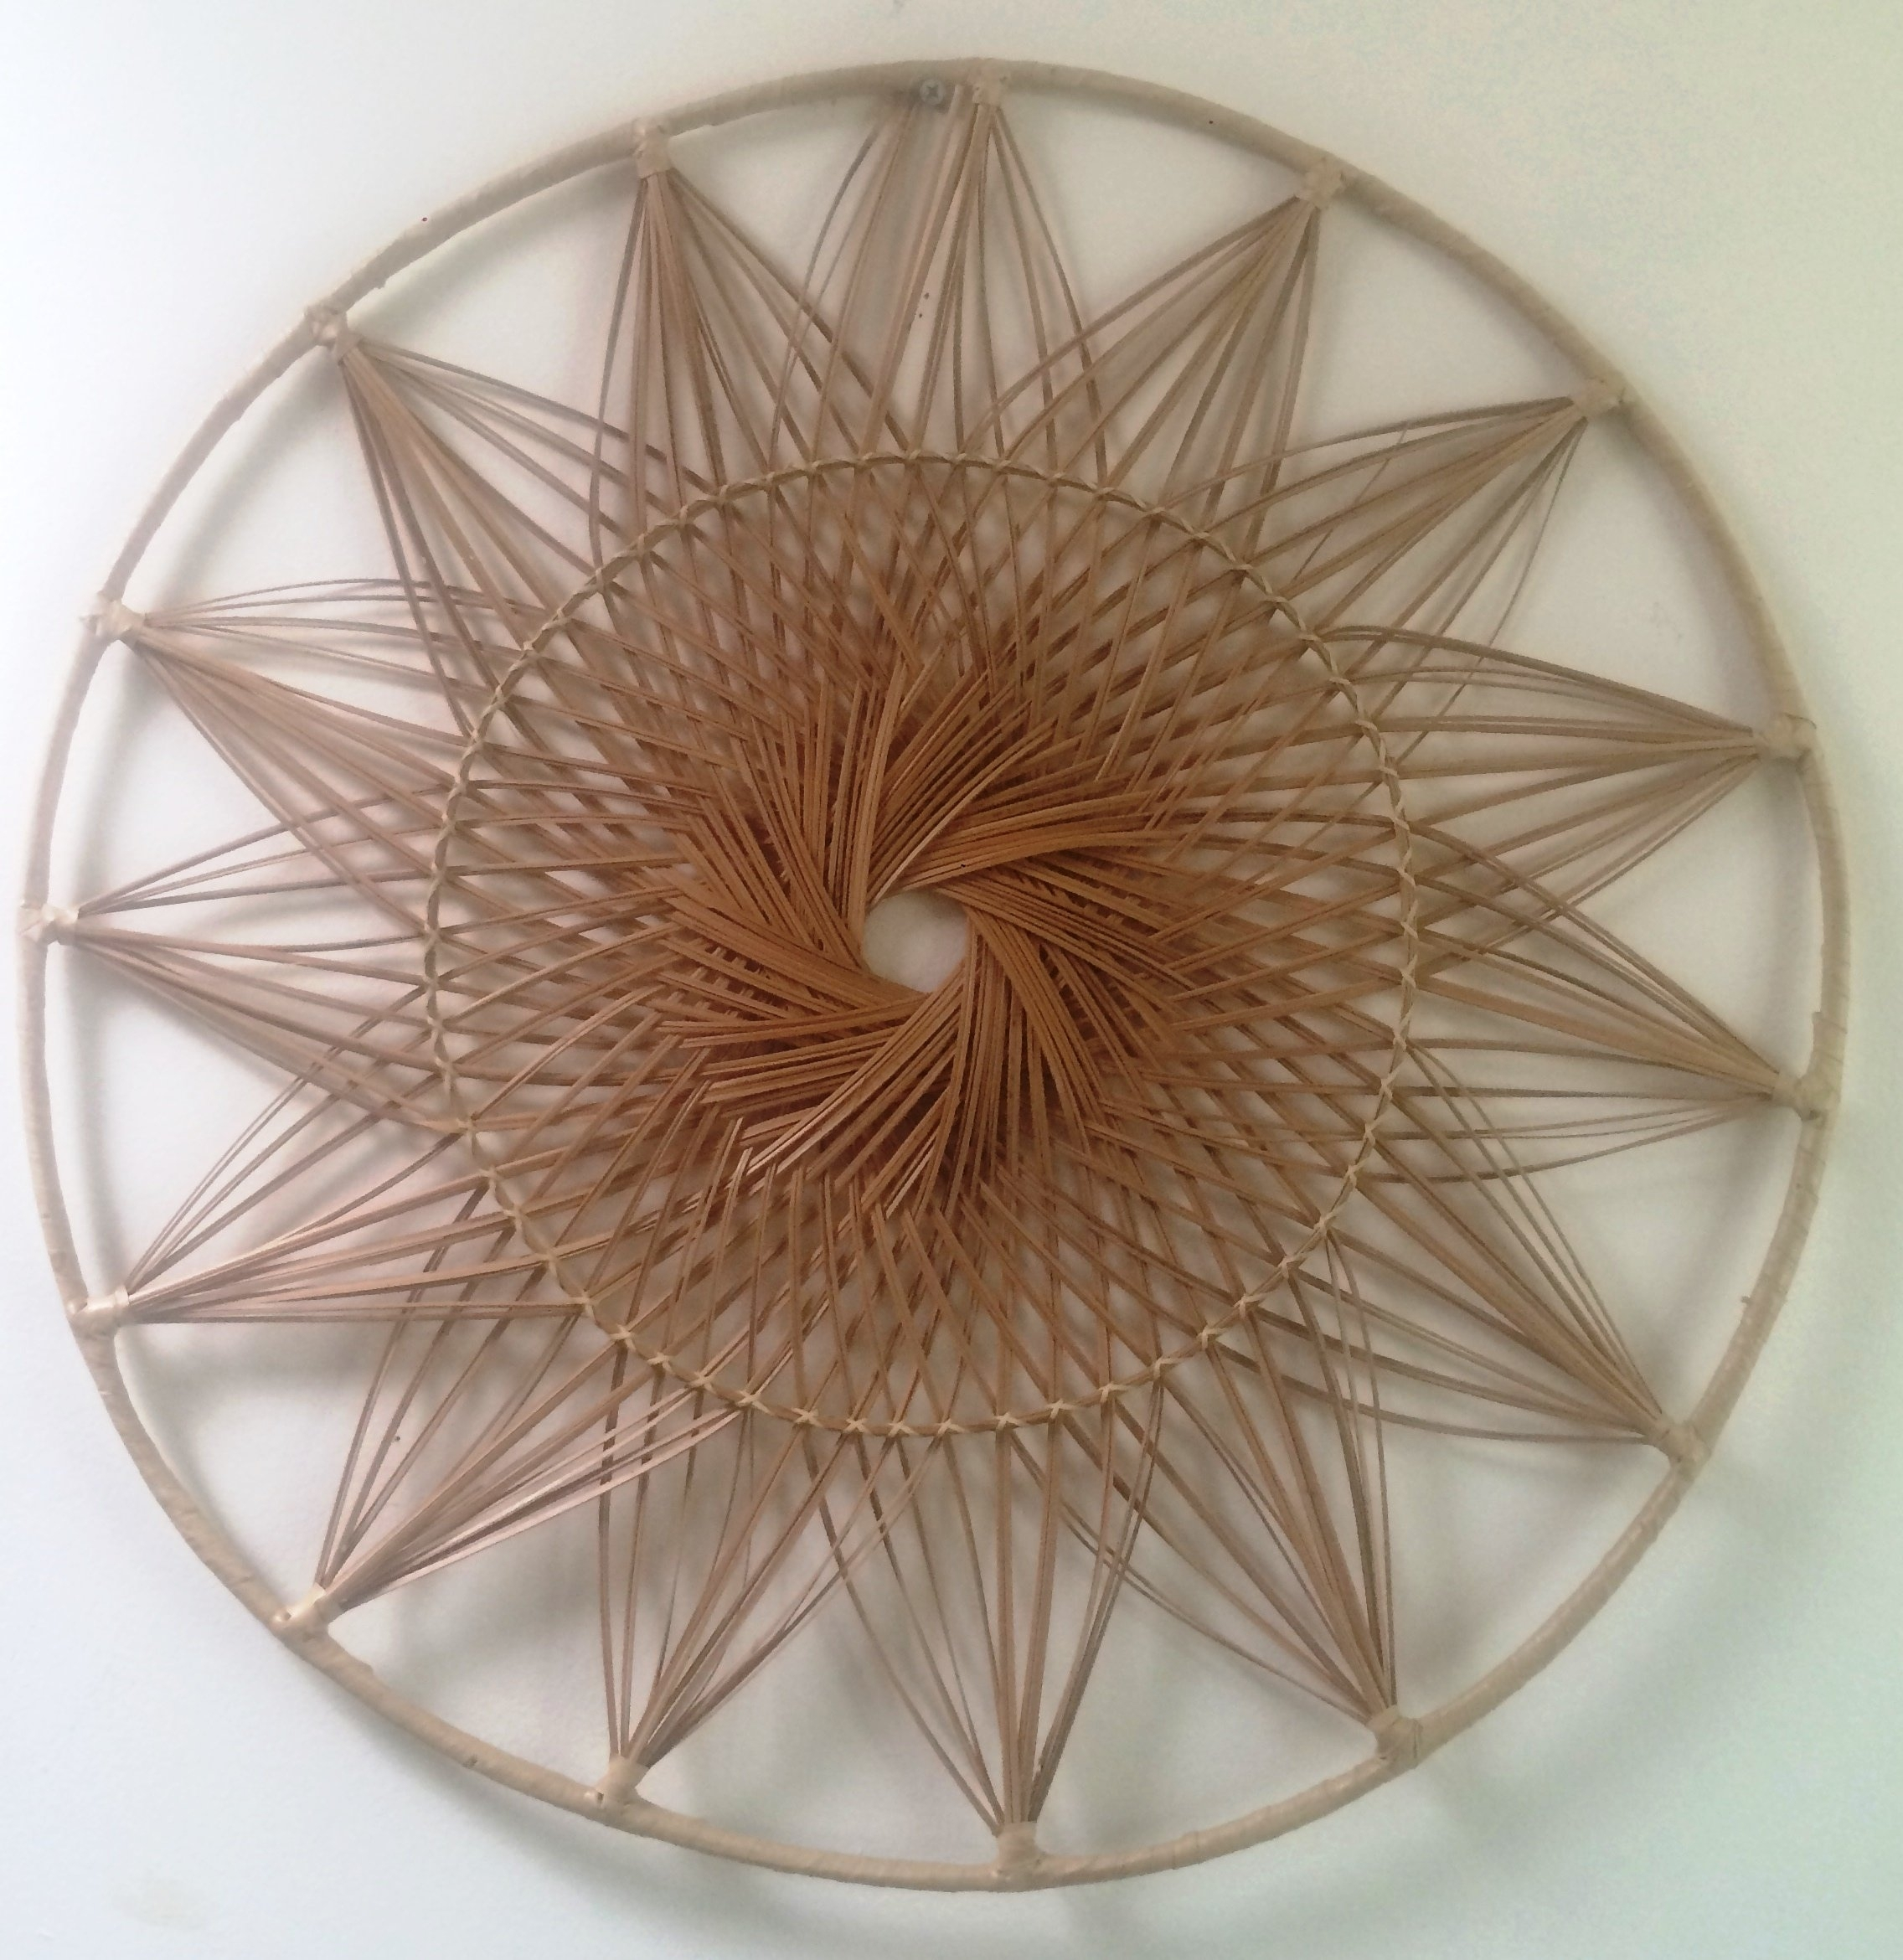 Ingenious Design Ideas Woven Basket Wall Art Vintage Hanging Large Throughout Latest Woven Basket Wall Art (View 10 of 20)